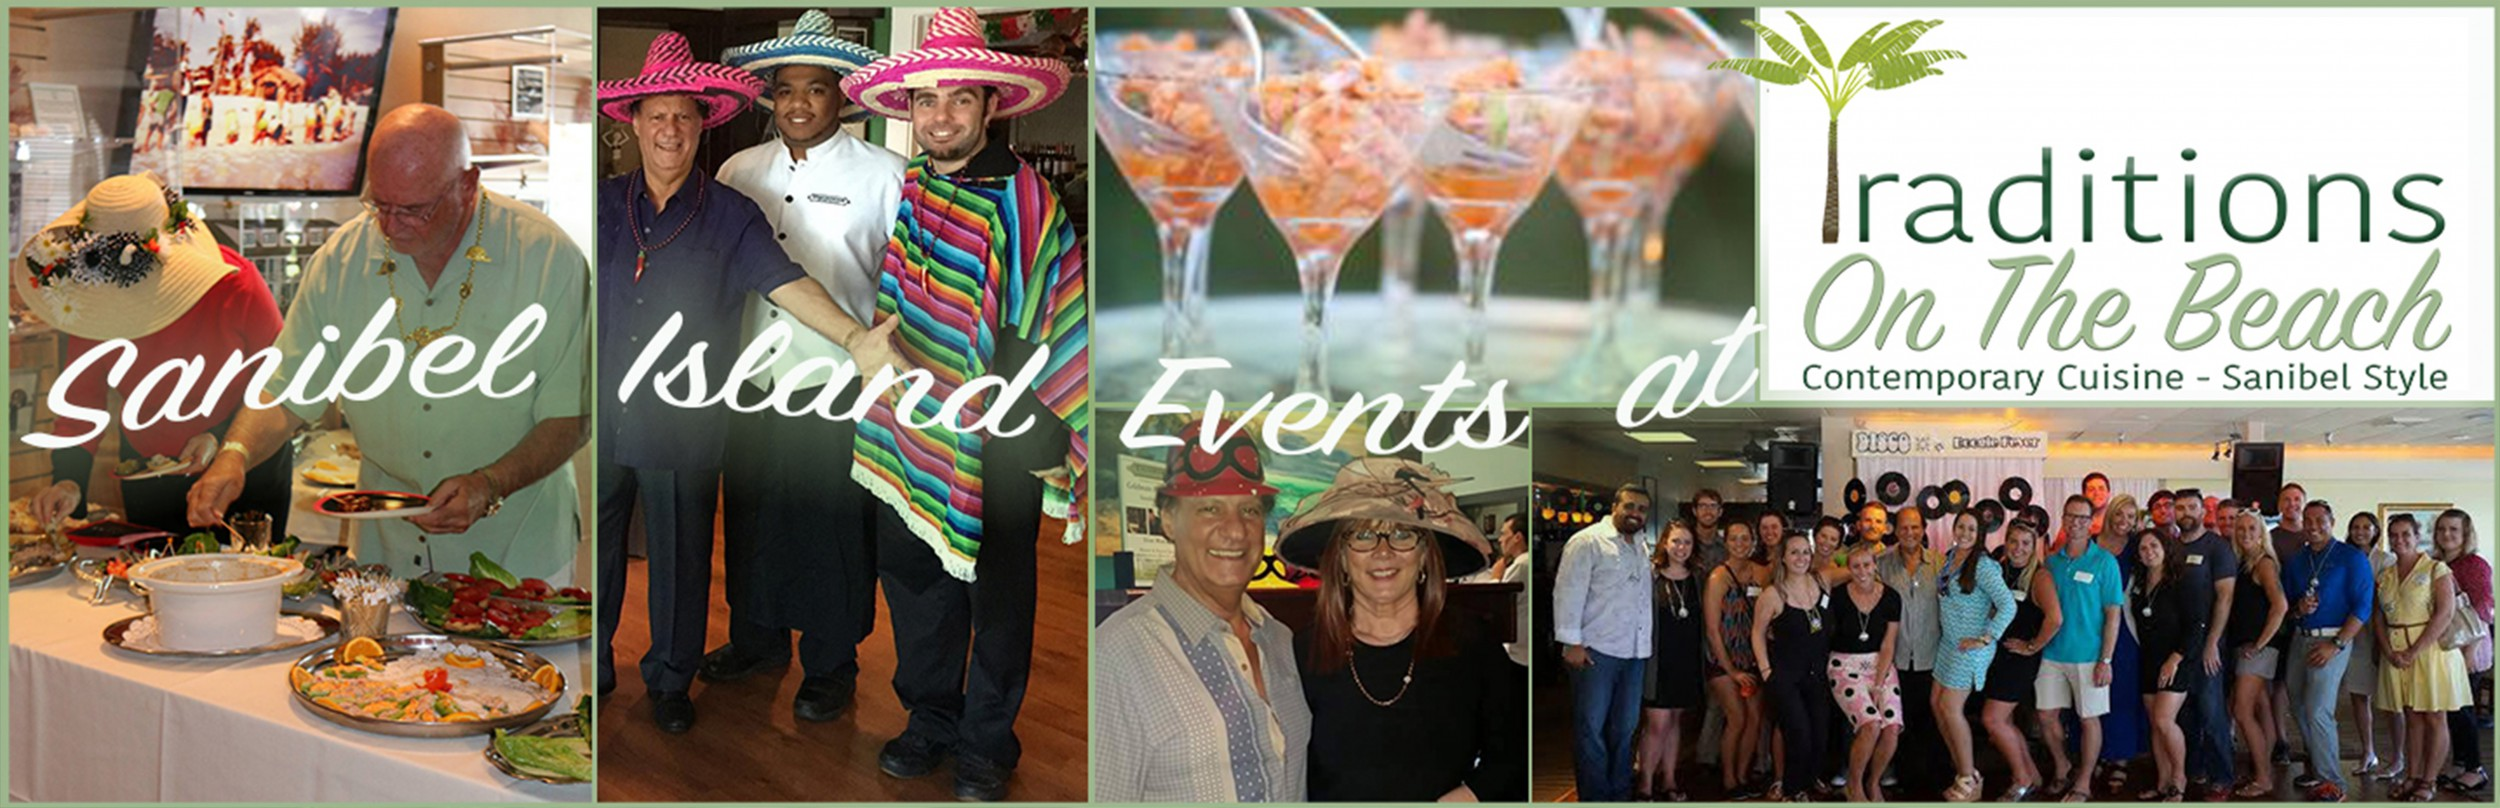 Sanibel Island Events at Traditions On The Beach